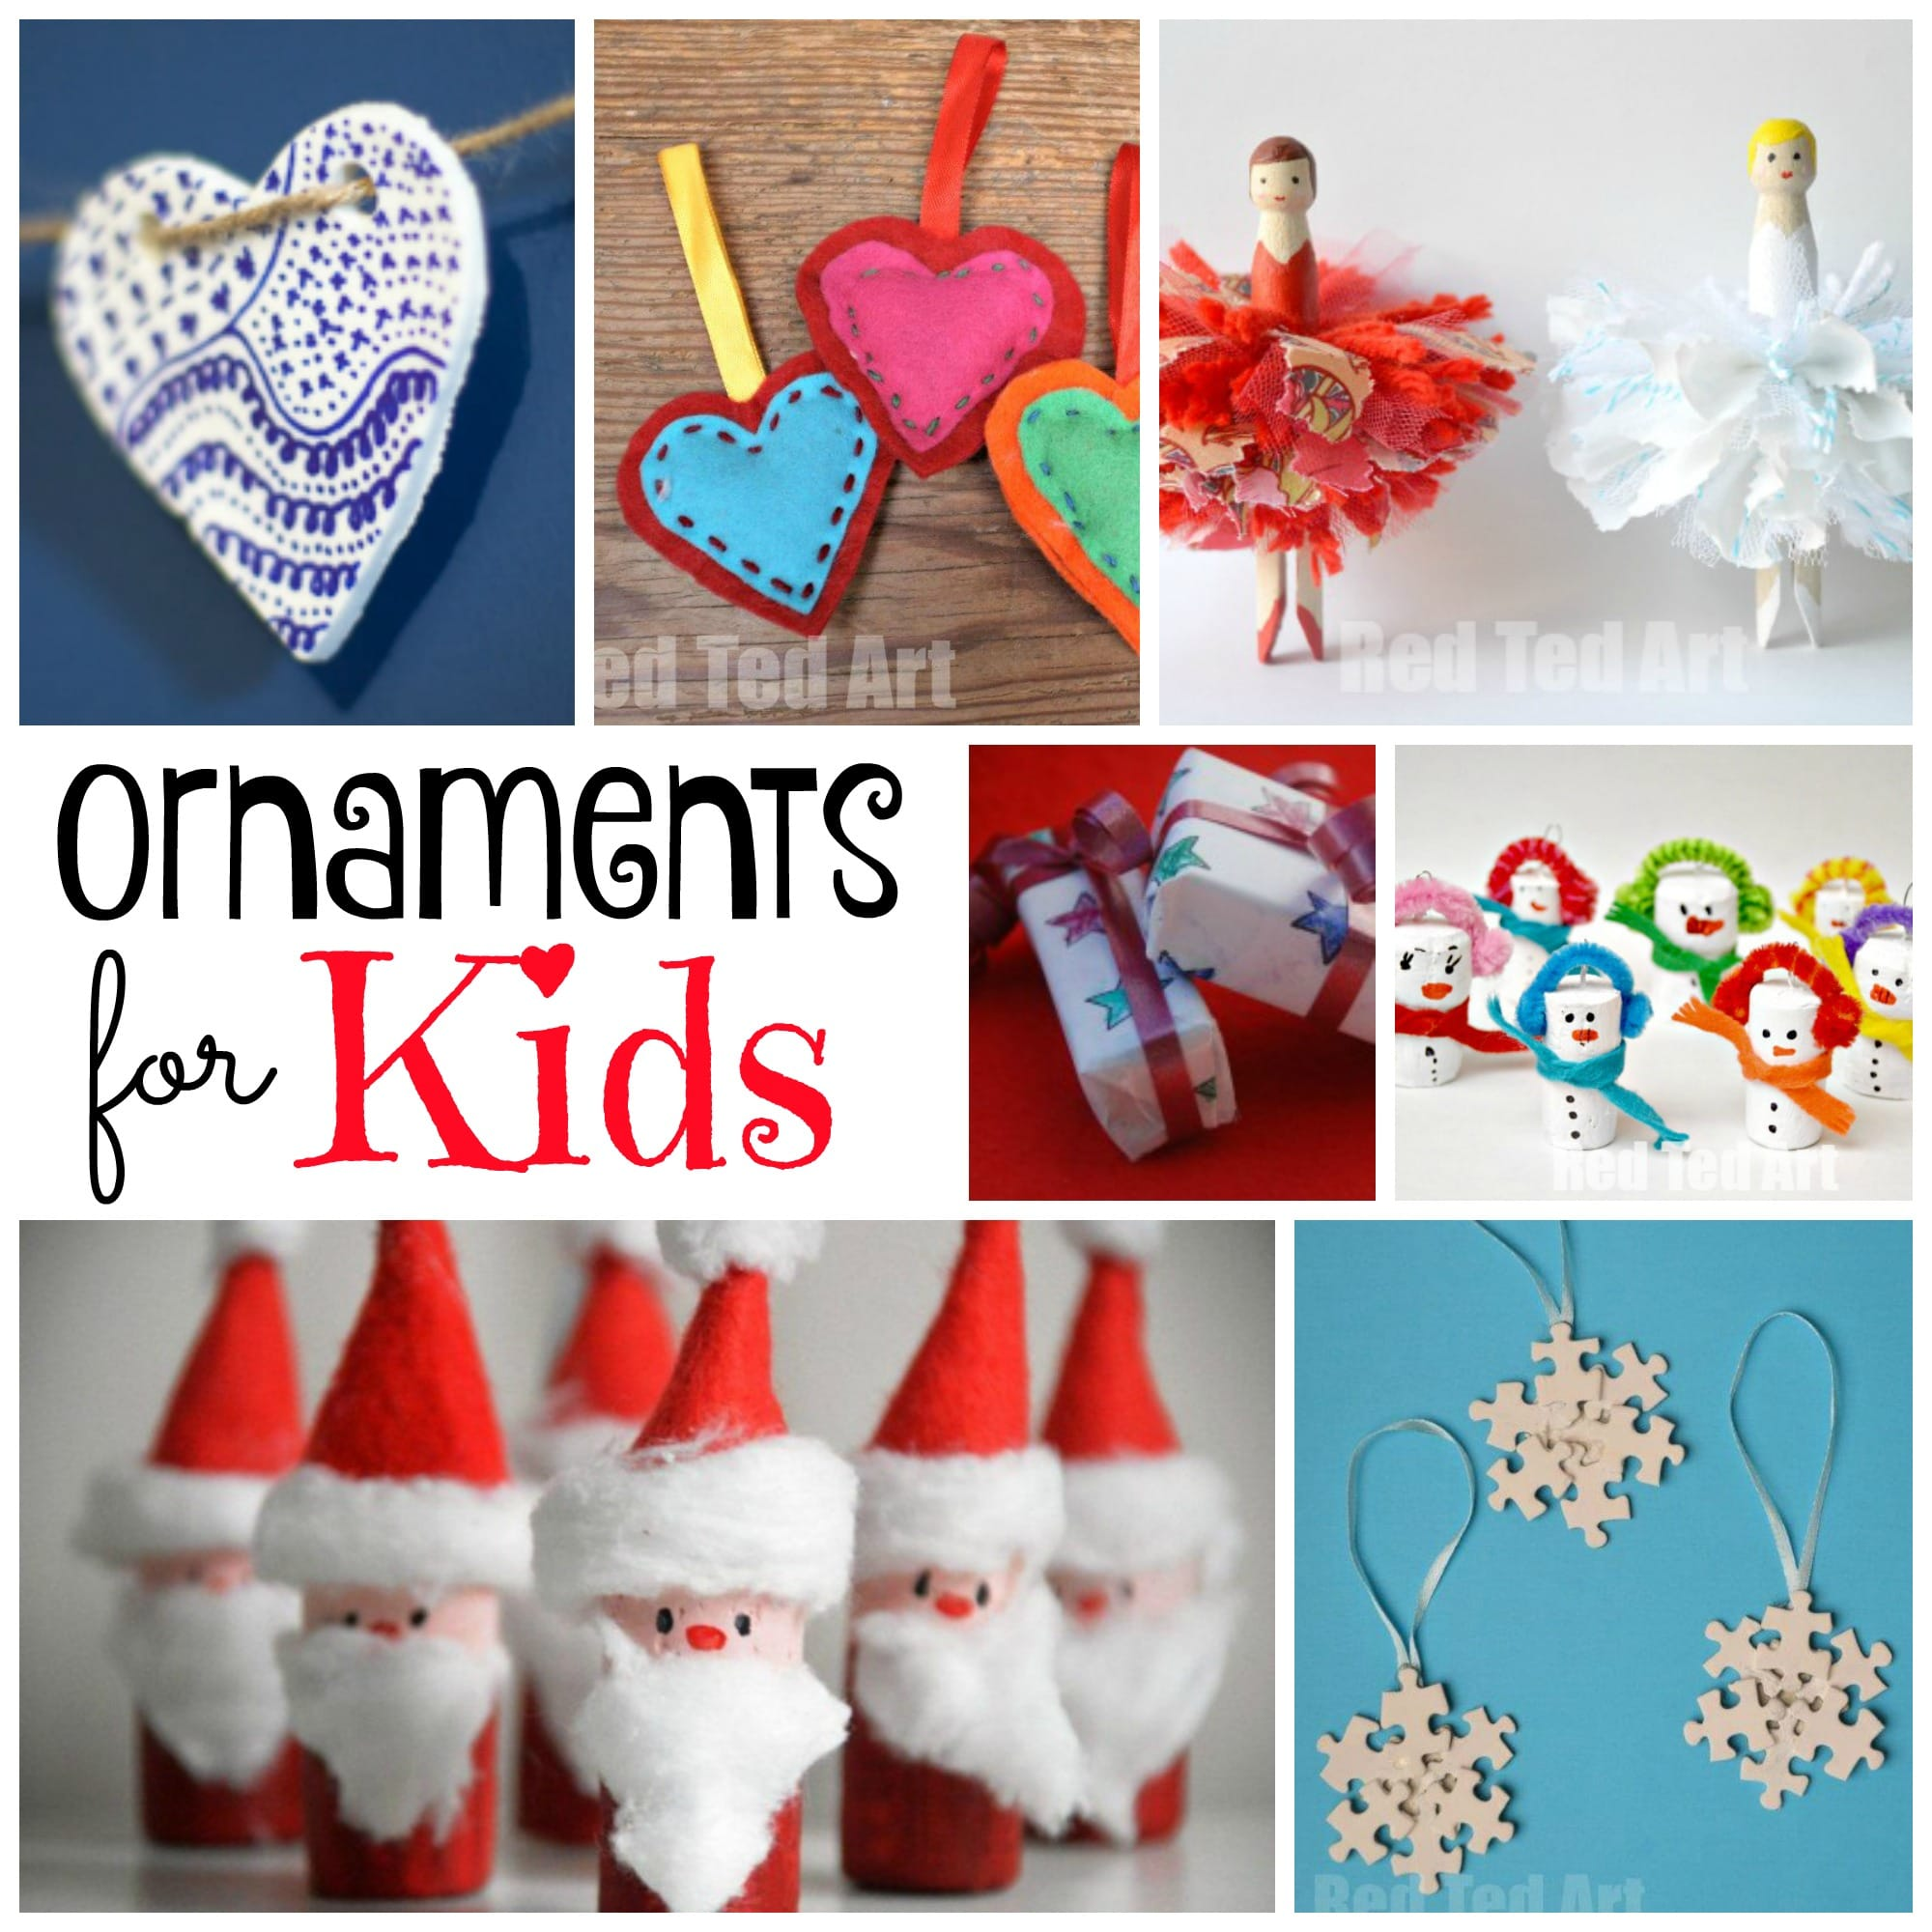 DIY Christmas Ornaments Red Ted Art Make crafting with